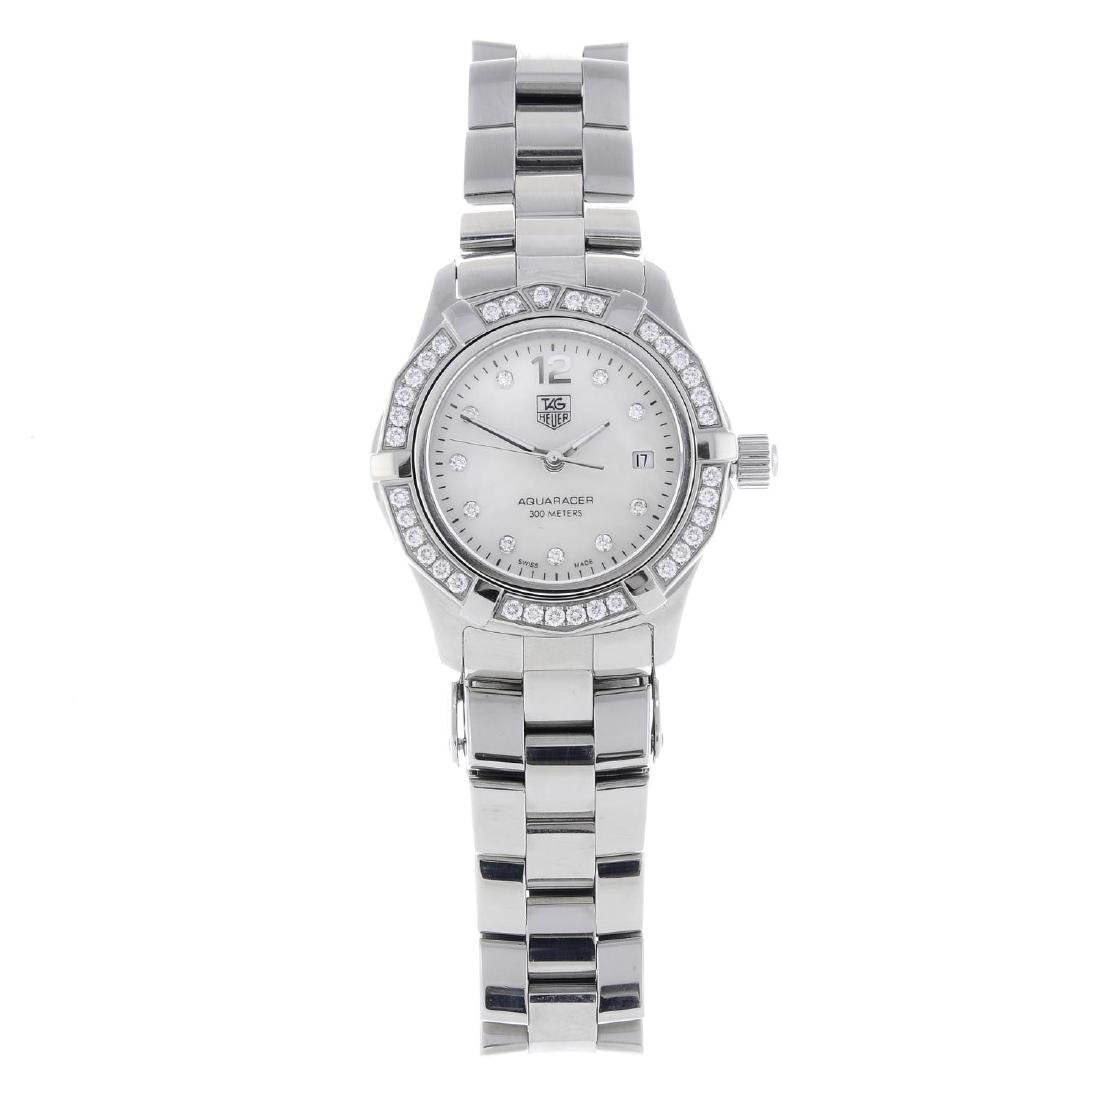 TAG HEUER - a lady's Aquaracer bracelet watch.